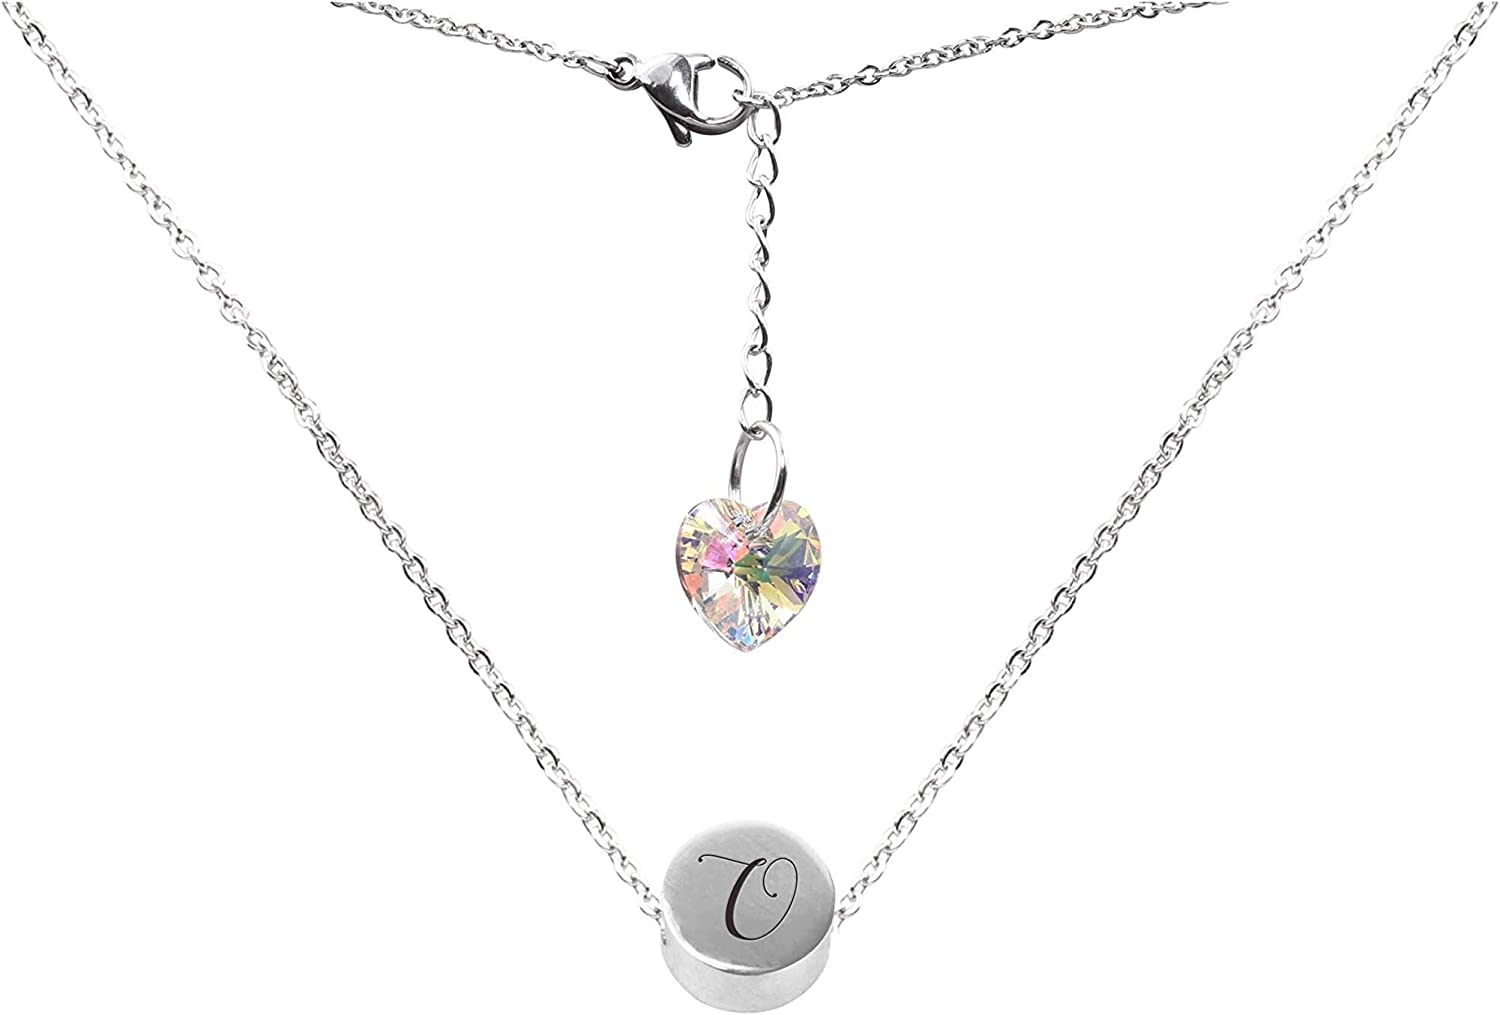 O Pink Box Round Slider Bead Initial Necklace Made with Crystals from Swarovski